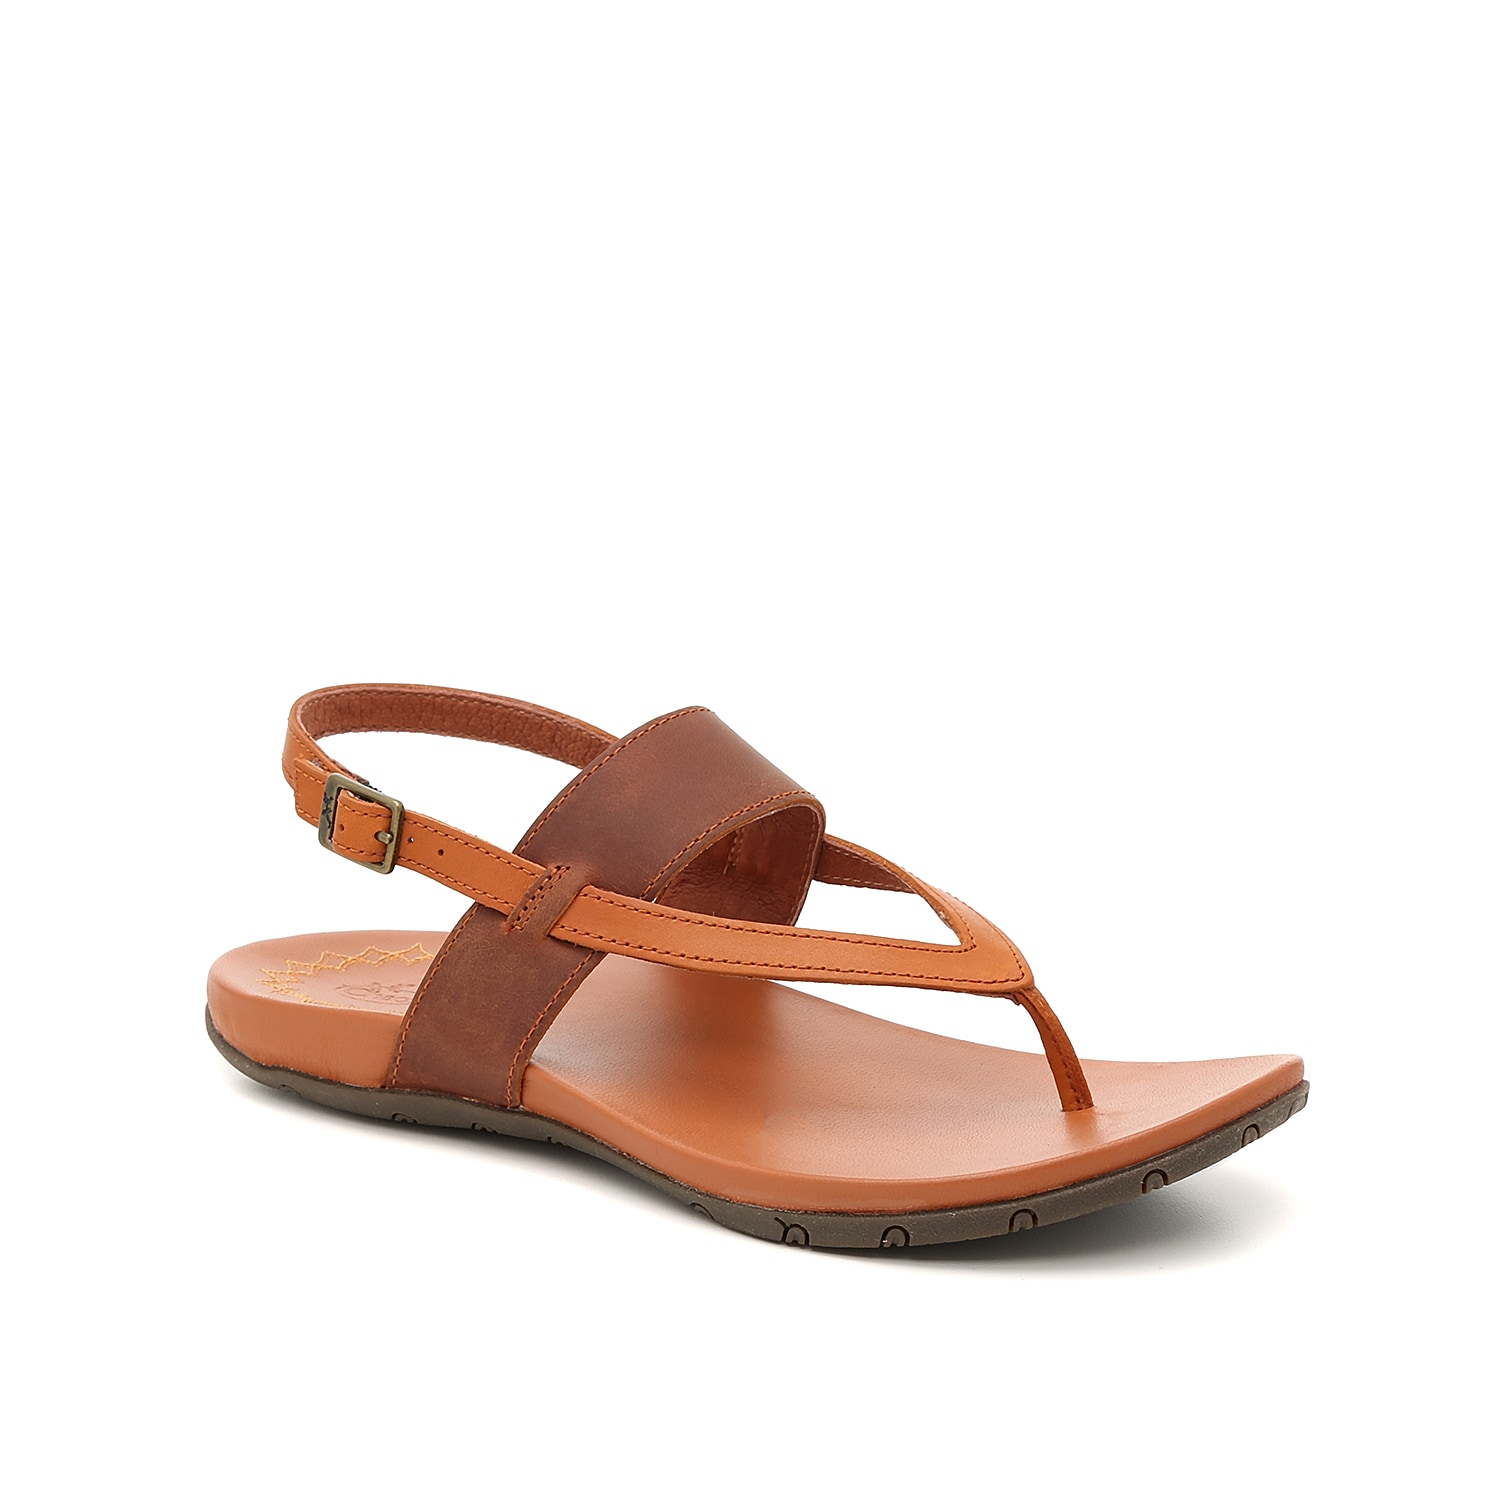 Get the support you need and the style you want with the Maya II sandal from Chaco. LUVSEAT™ technology and a non-marking ChacoGrip™ sole will make this leather pair your new go-to all season long.